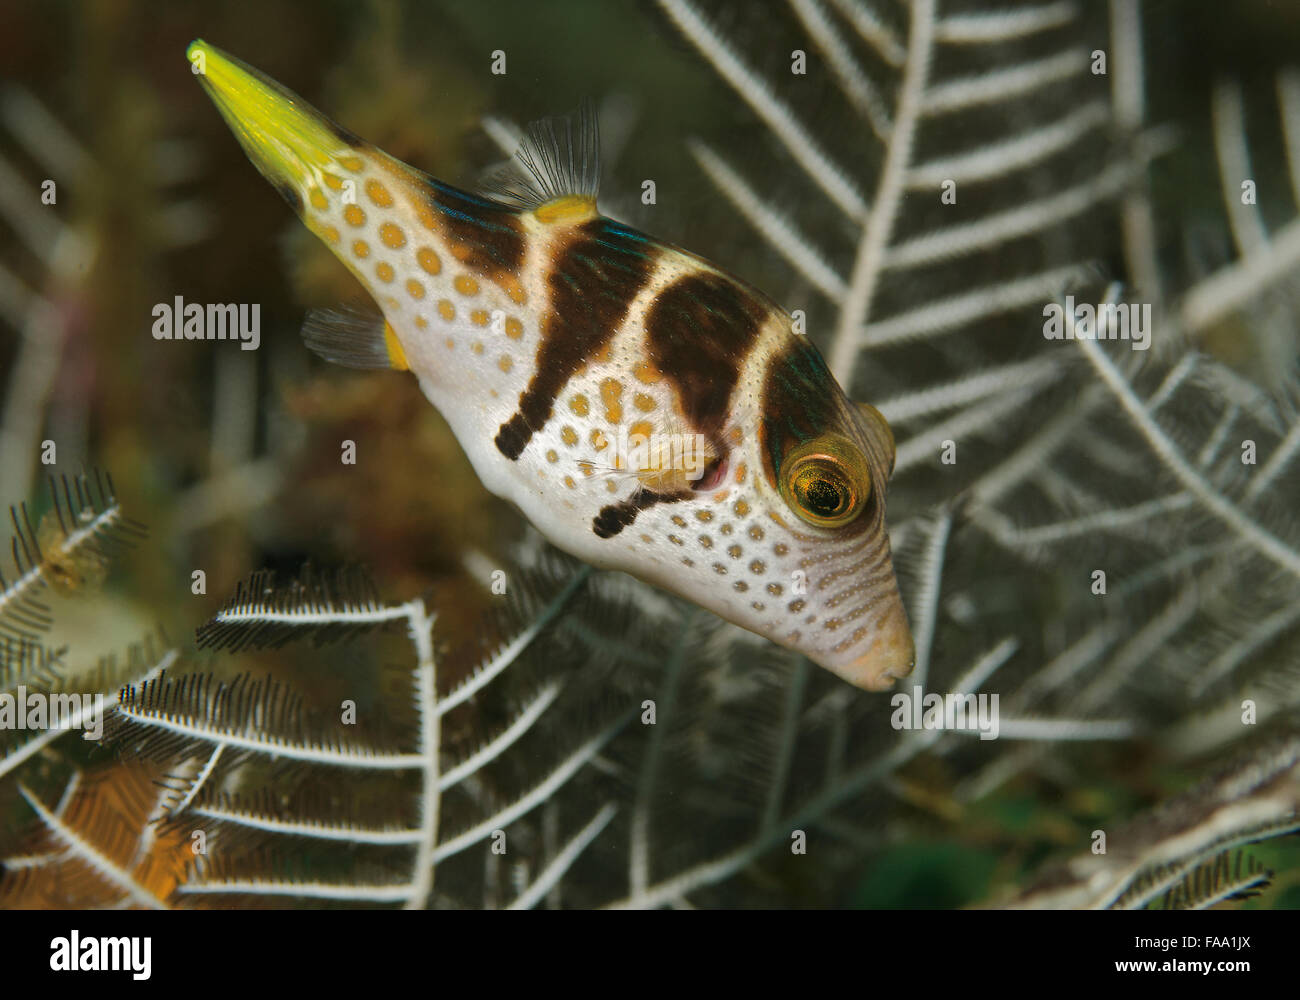 Black-saddled Toby, Canthigaster valentini, on soft coral in Tulamben, Bali, Indonesia Stock Photo